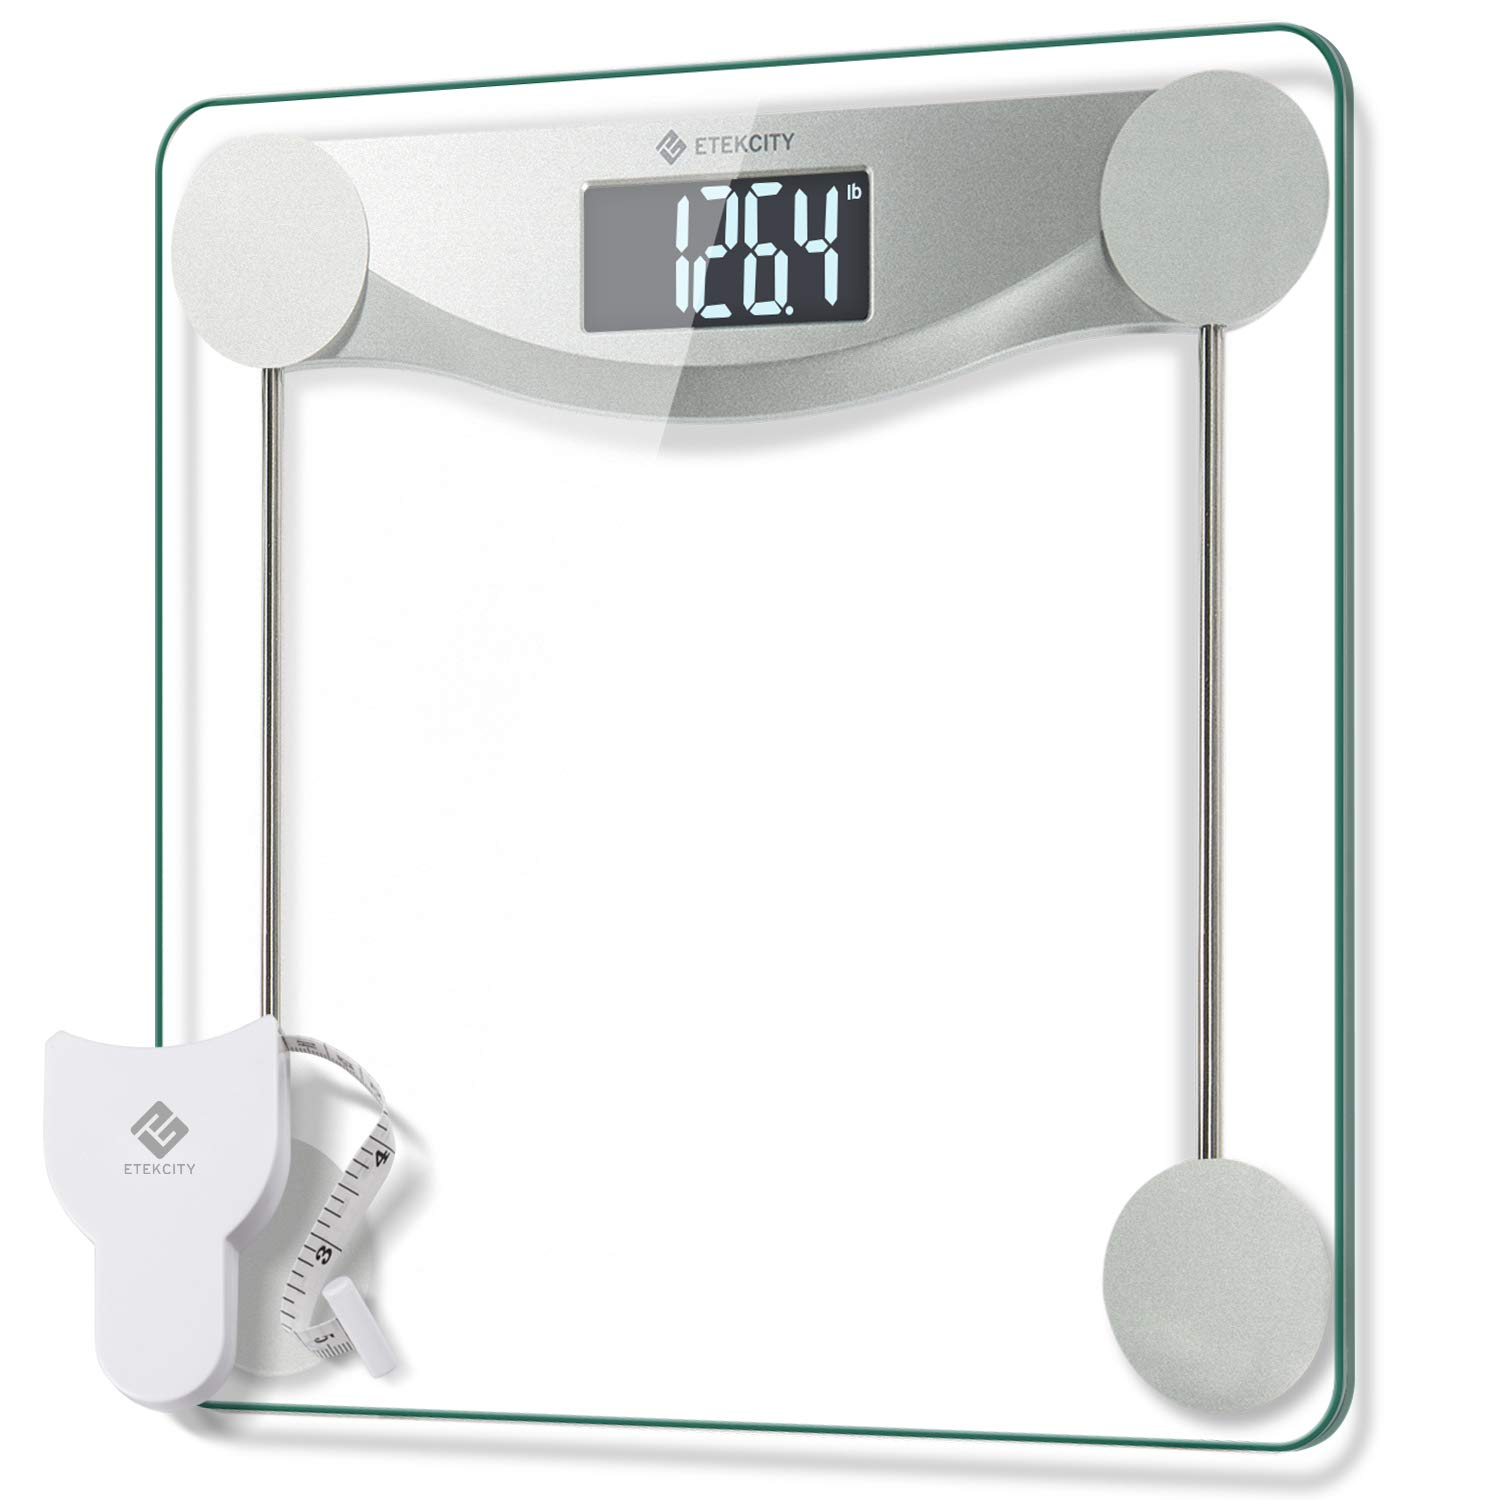 Etekcity Digital Body Weight Bathroom Scale with Step-On Technology, 440 Pounds, Body Tape Measure Included by Etekcity